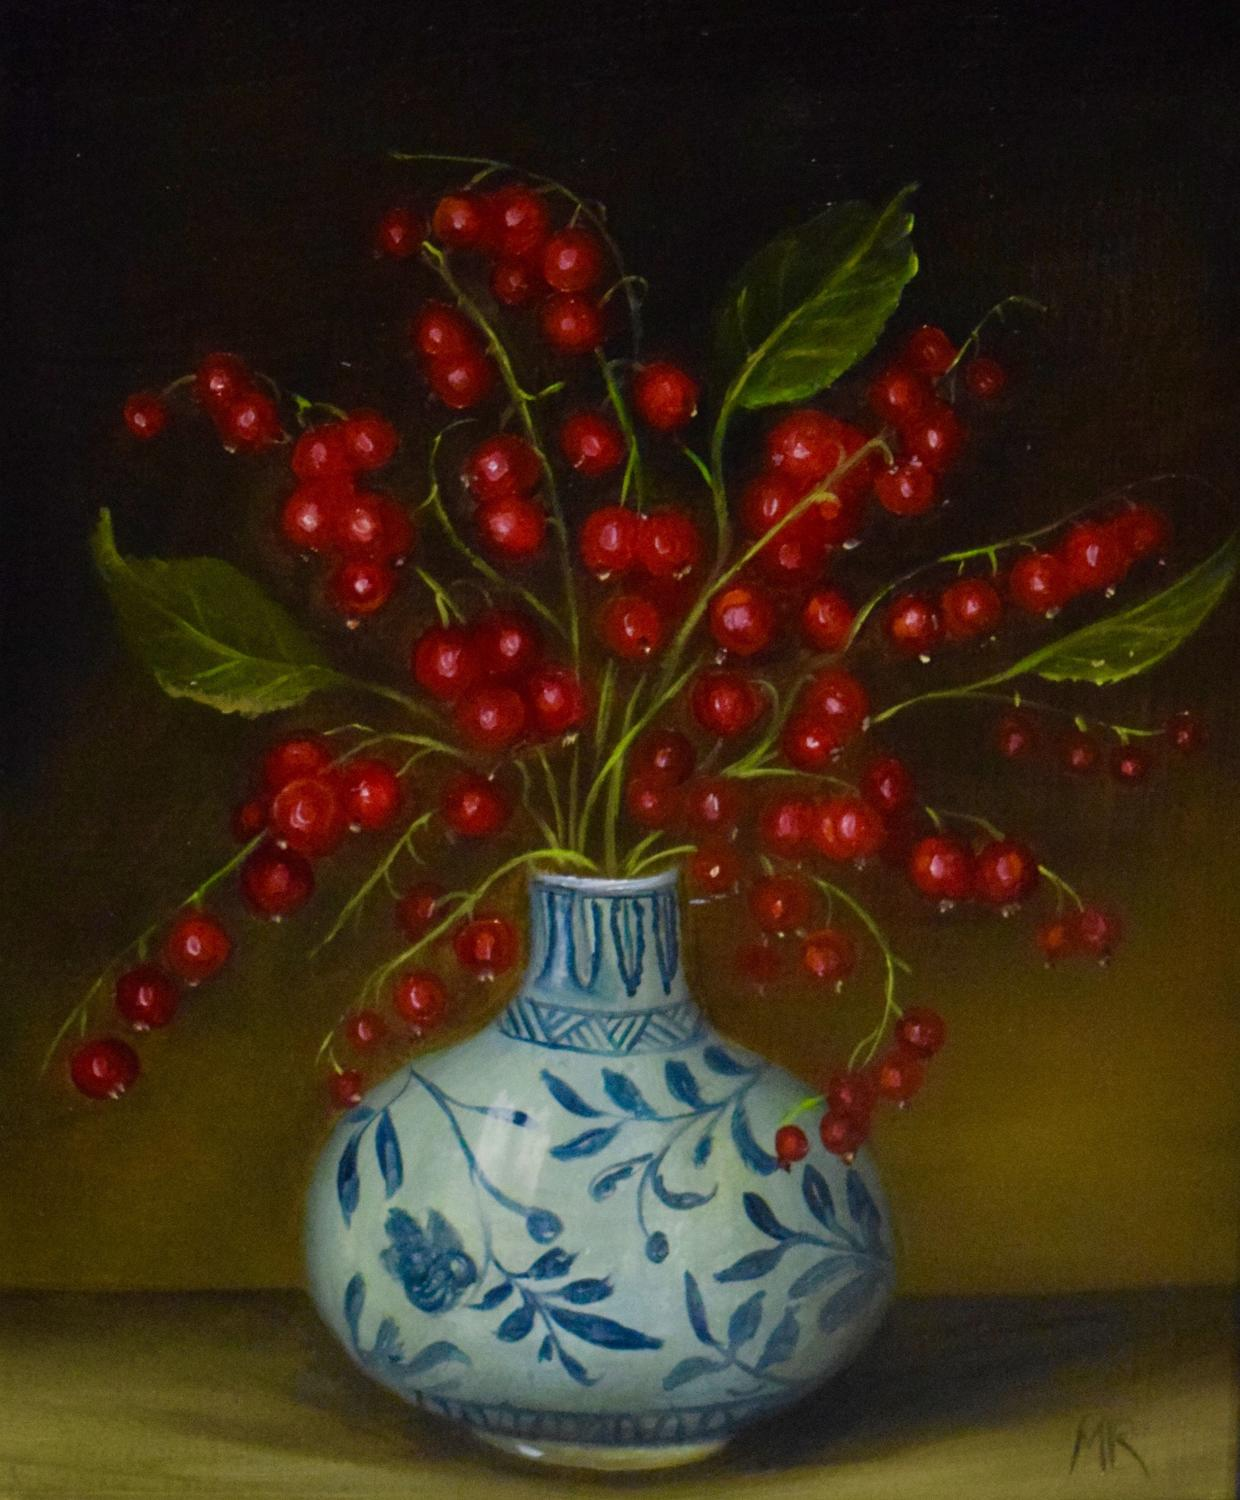 Red currants in a vase